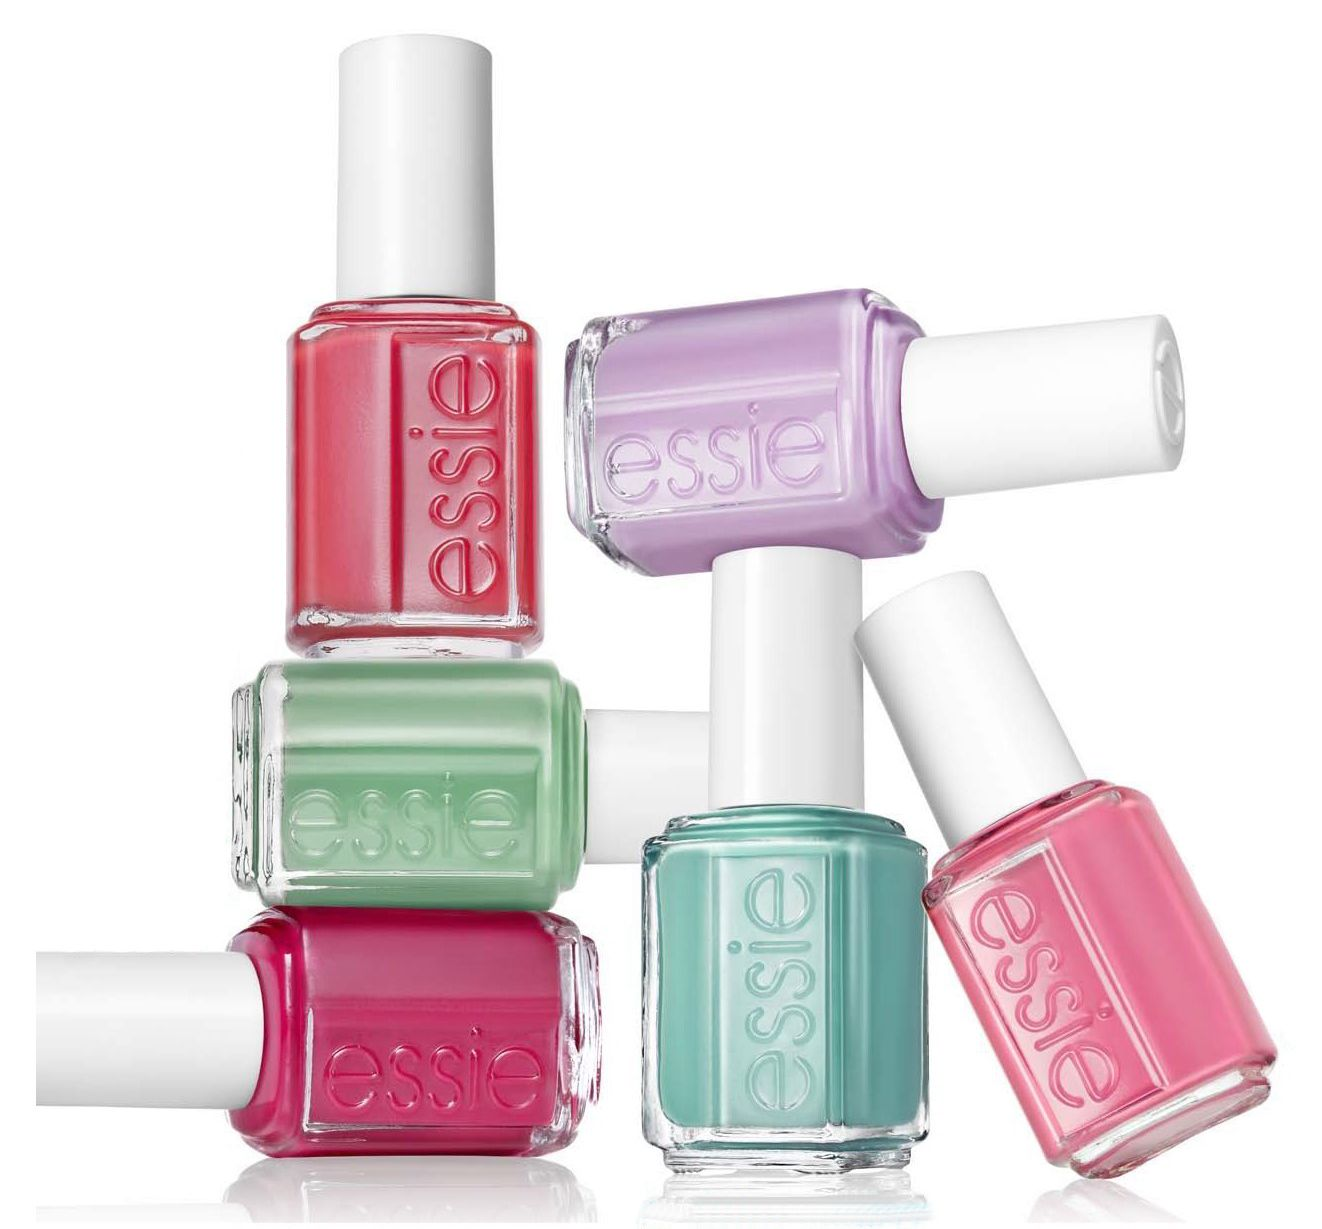 Essie nail polish | My favorite things | Pinterest | Essie nail polish